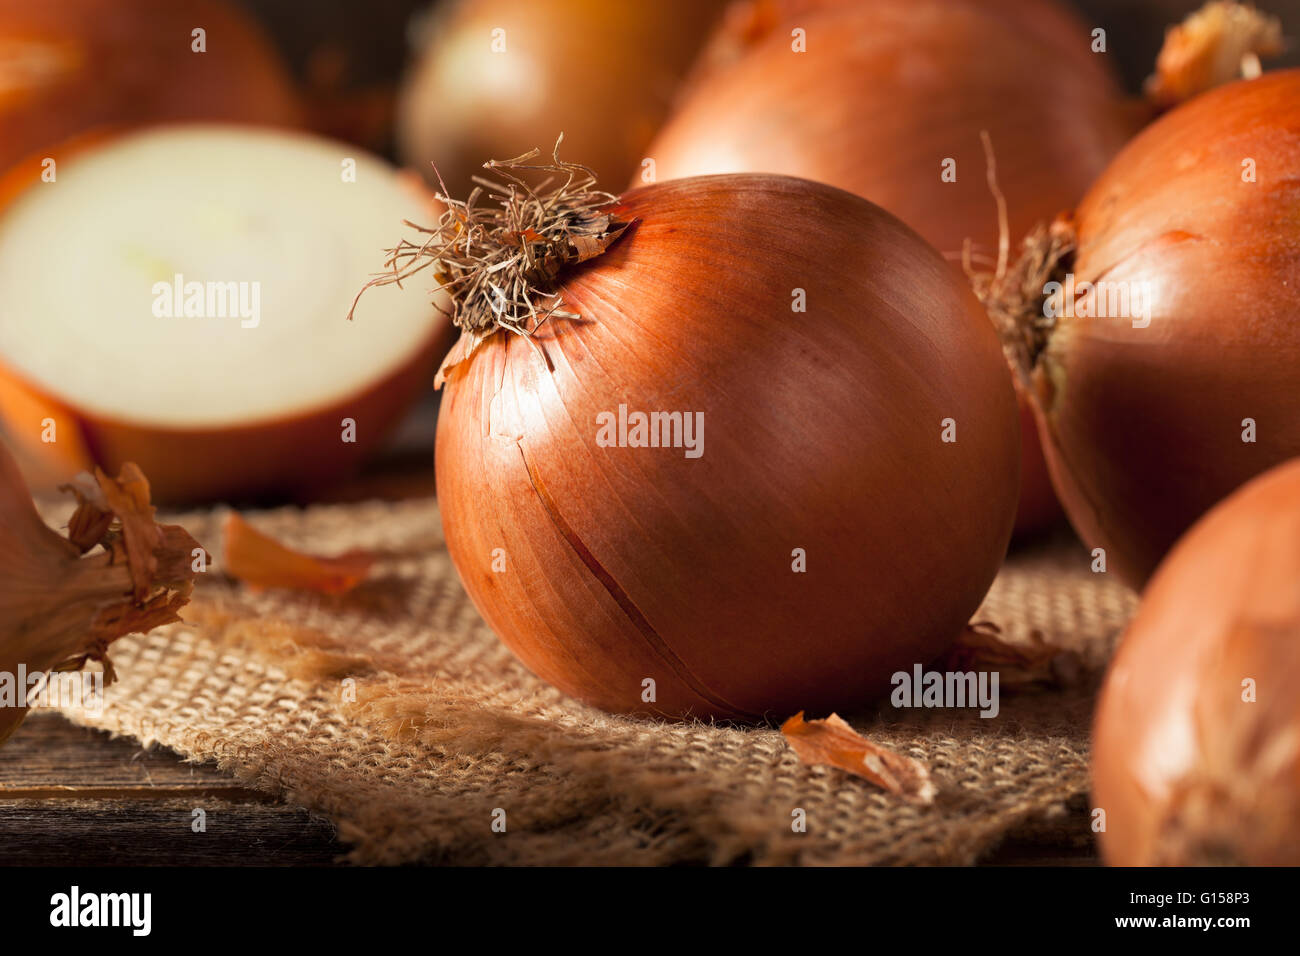 Raw Organic Yellow Onions Ready for Cooking - Stock Image